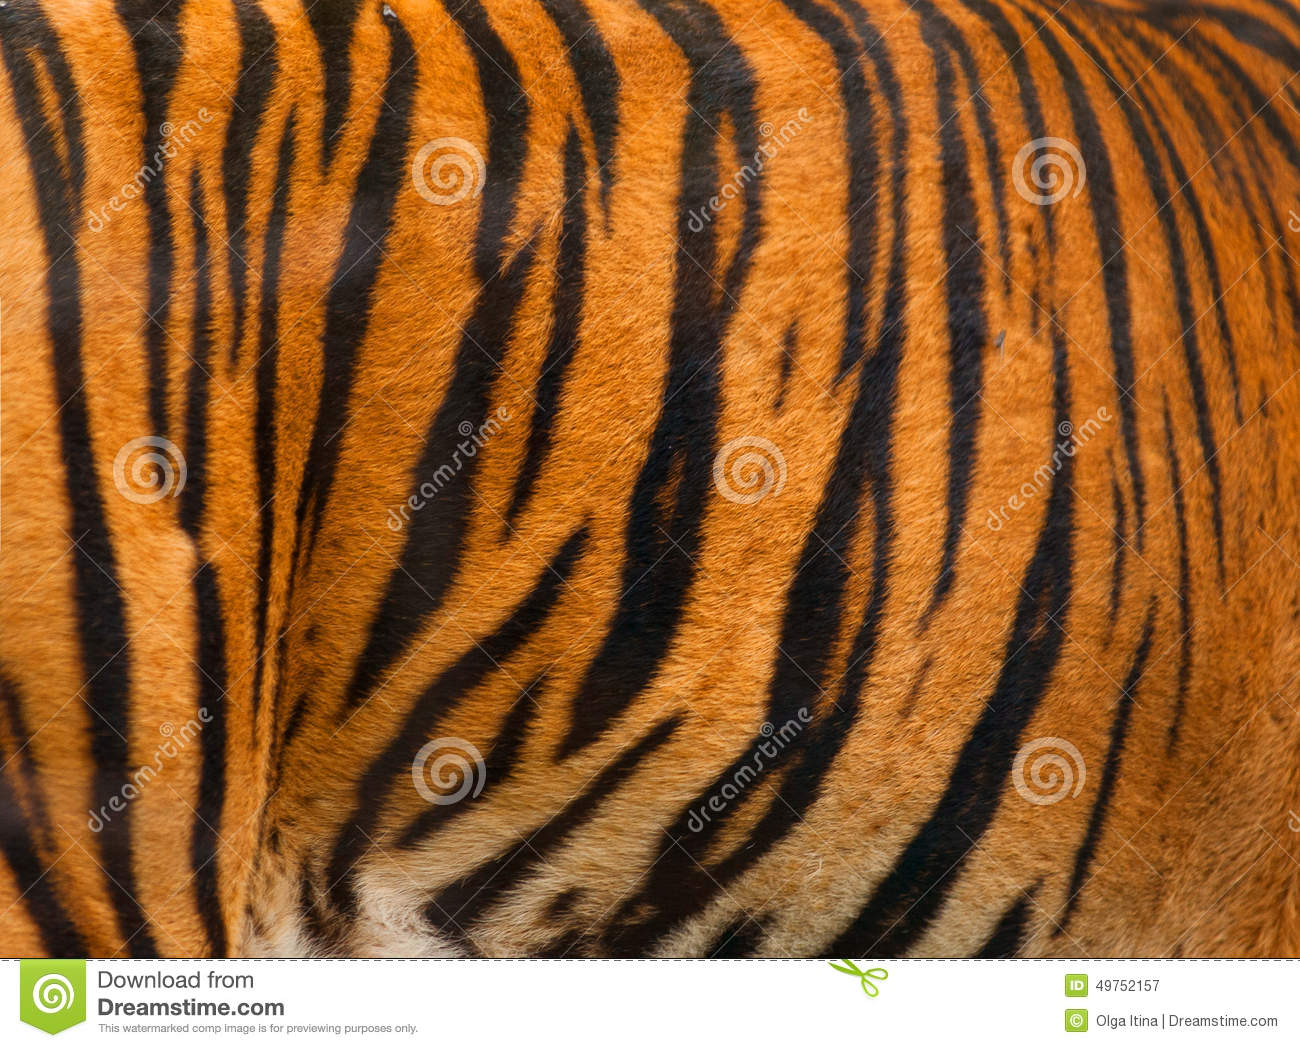 Real Tiger Fur Texture Striped Pattern Background Stock ... - photo#8